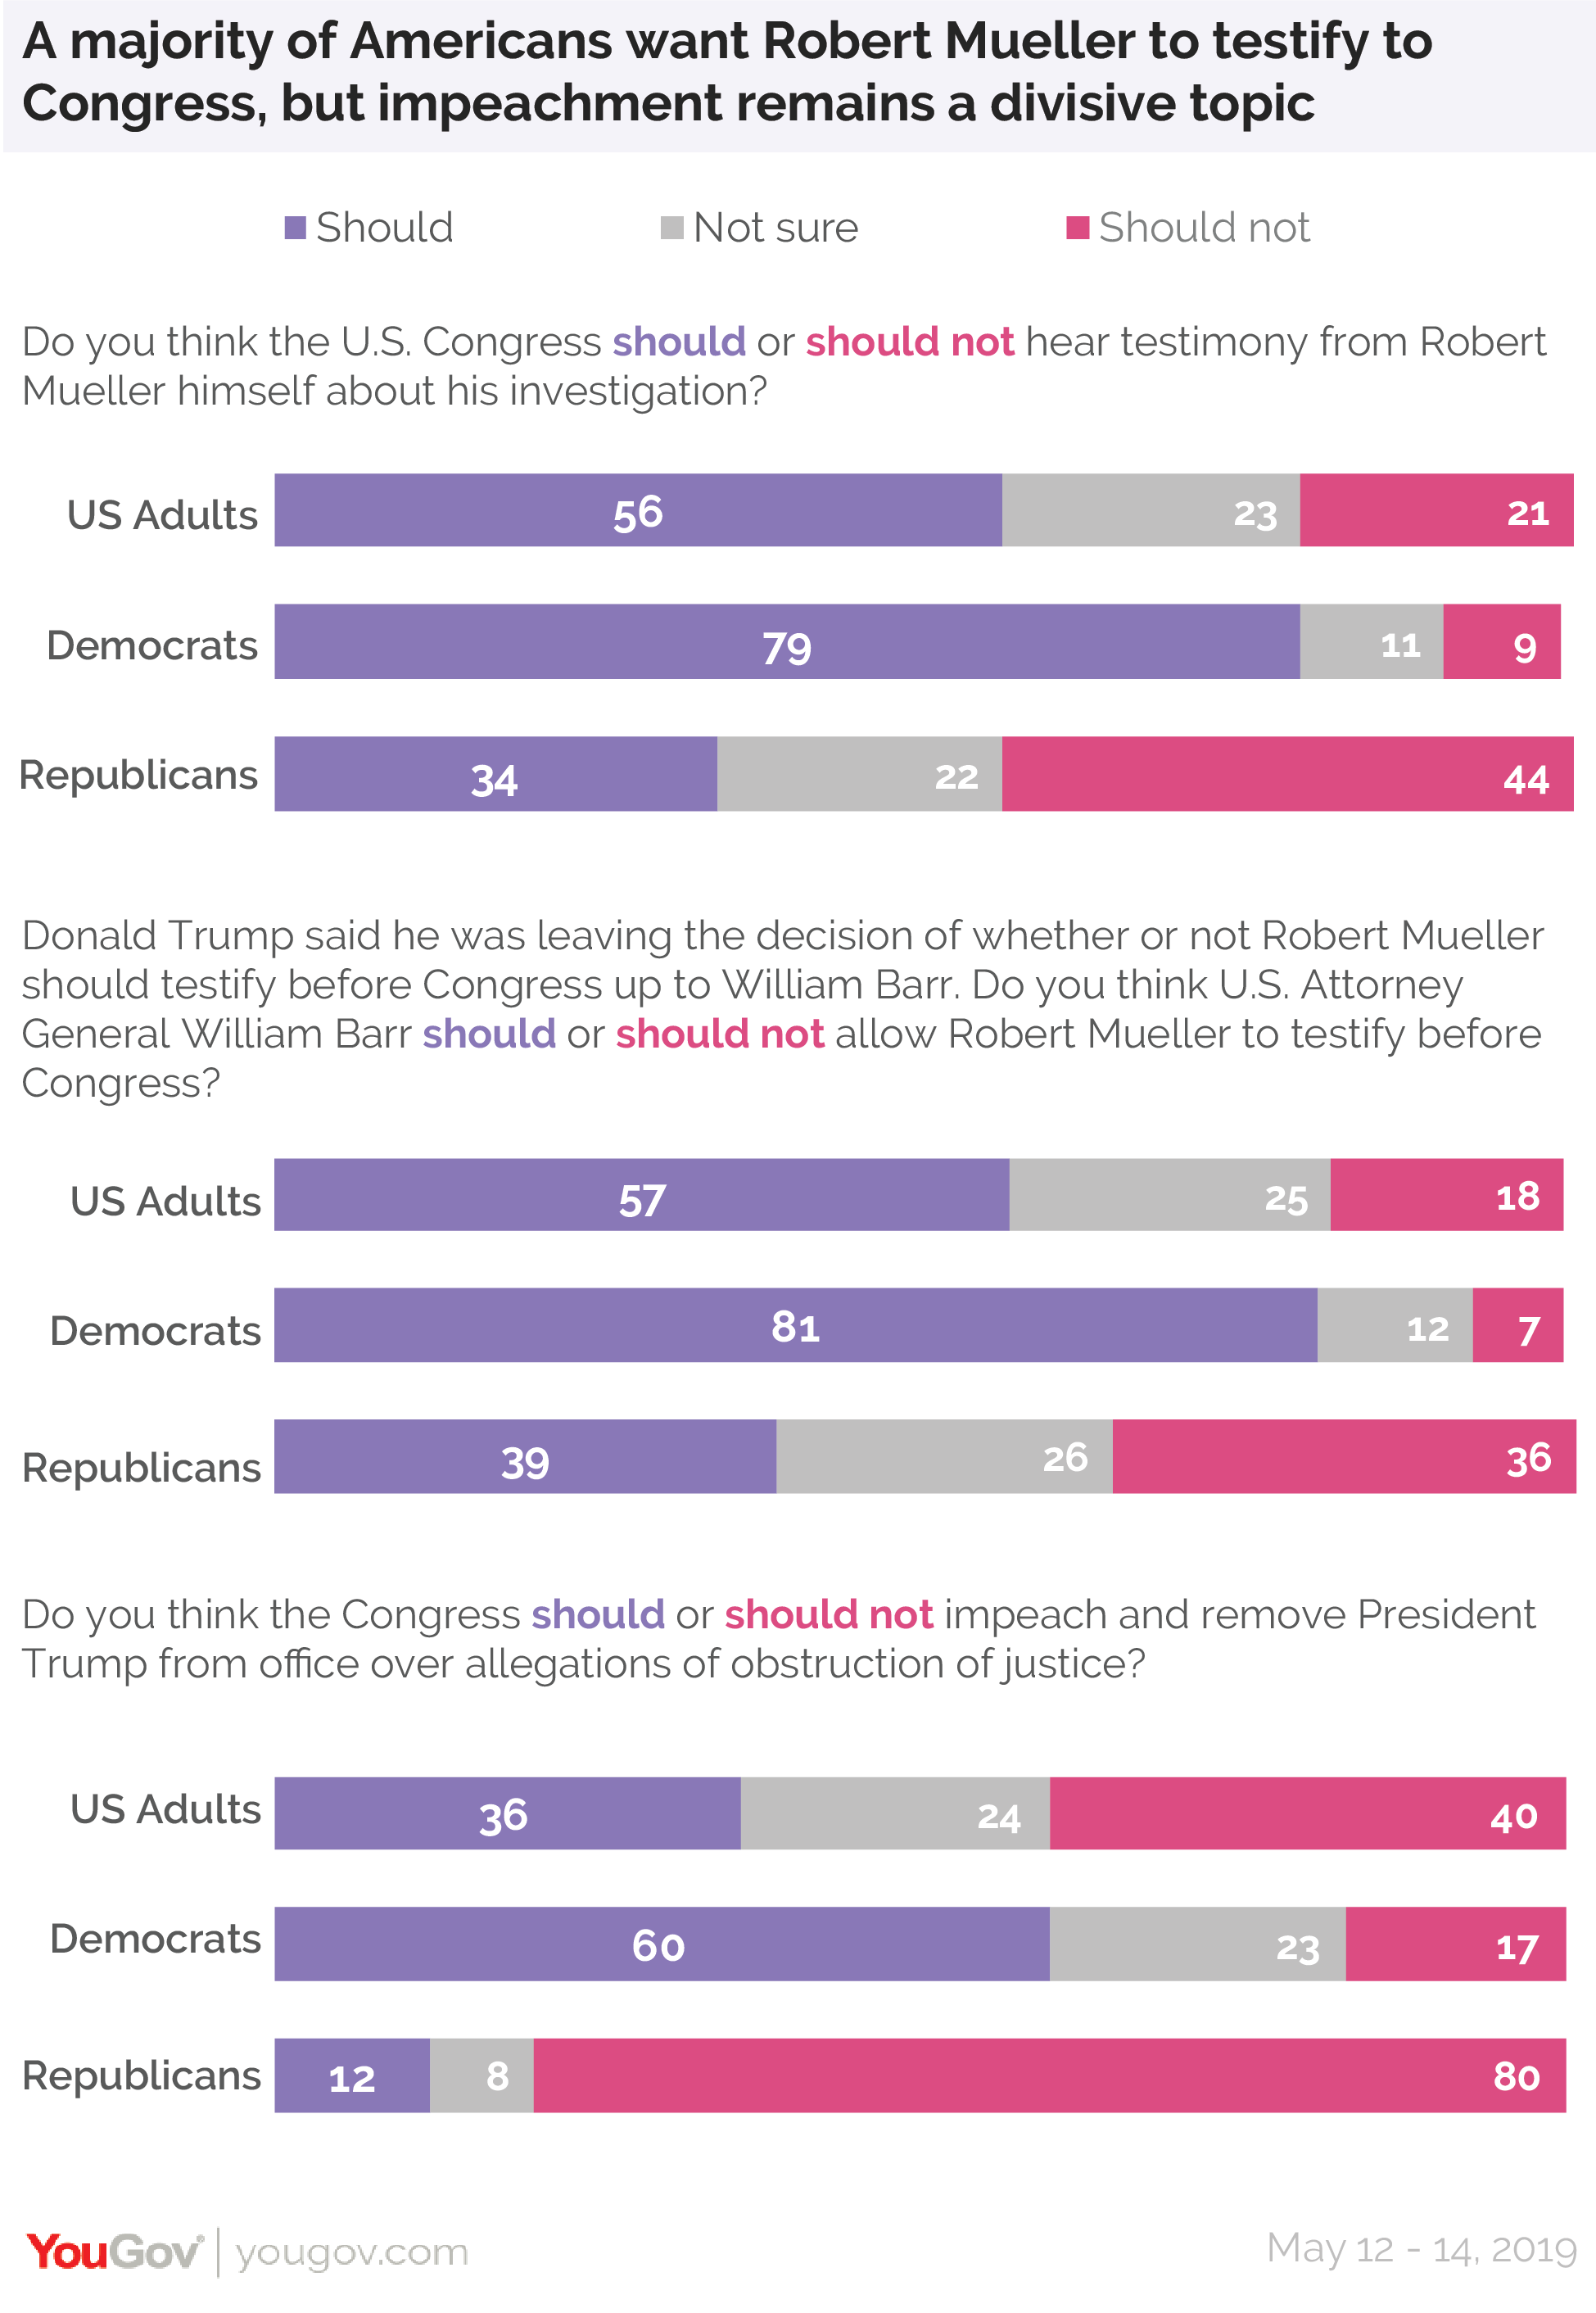 A majority of Americans want Robert Mueller to testify to Congress, but impeachment remains a divisive topic